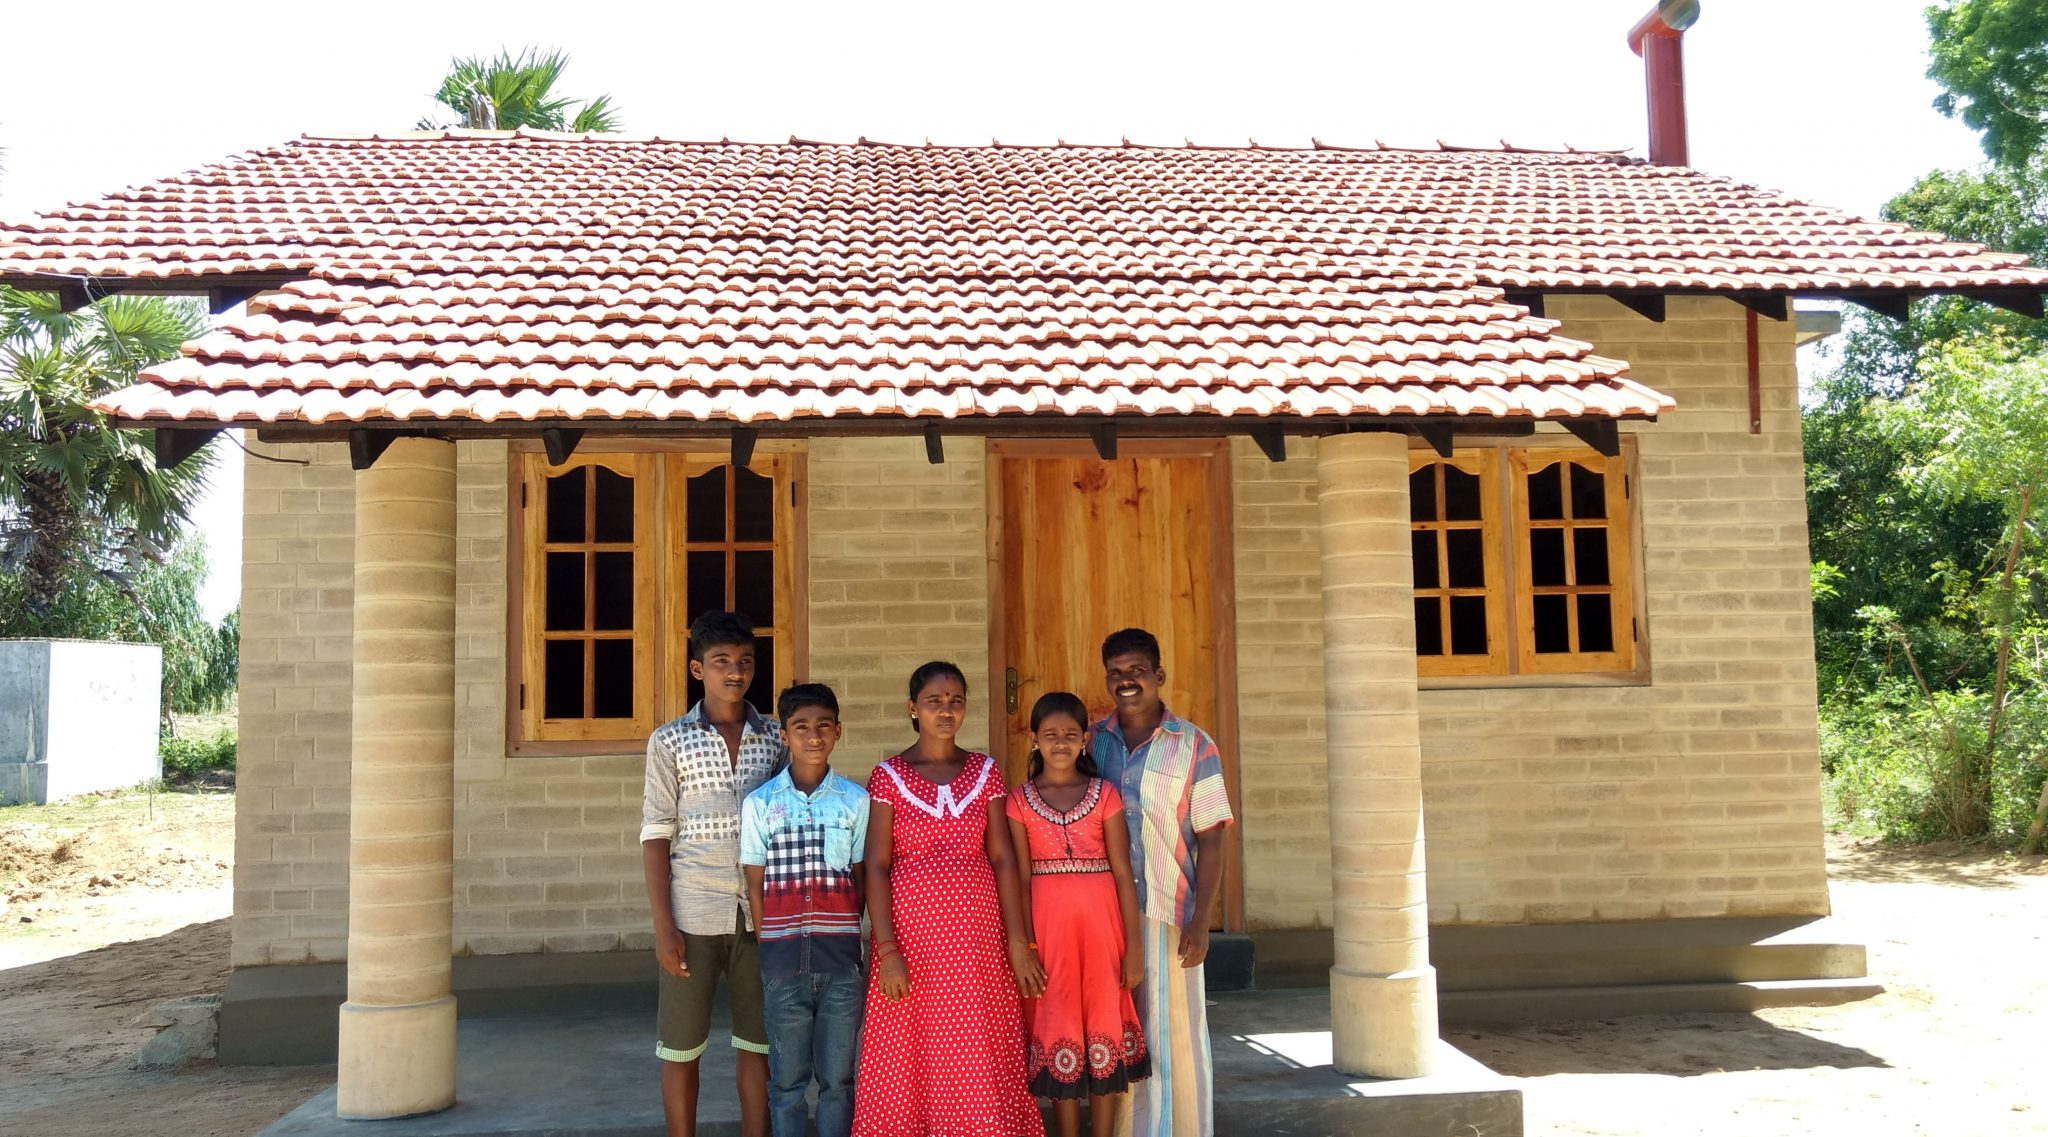 Thillainathan (far right) and Ushathevi (center) with their children (from left) Dinesh, Shanmugasivam and Aishwarya in front of their Habitat house after it was completed in August 2017. Photo: Habitat for Humanity/Jim Kendall.